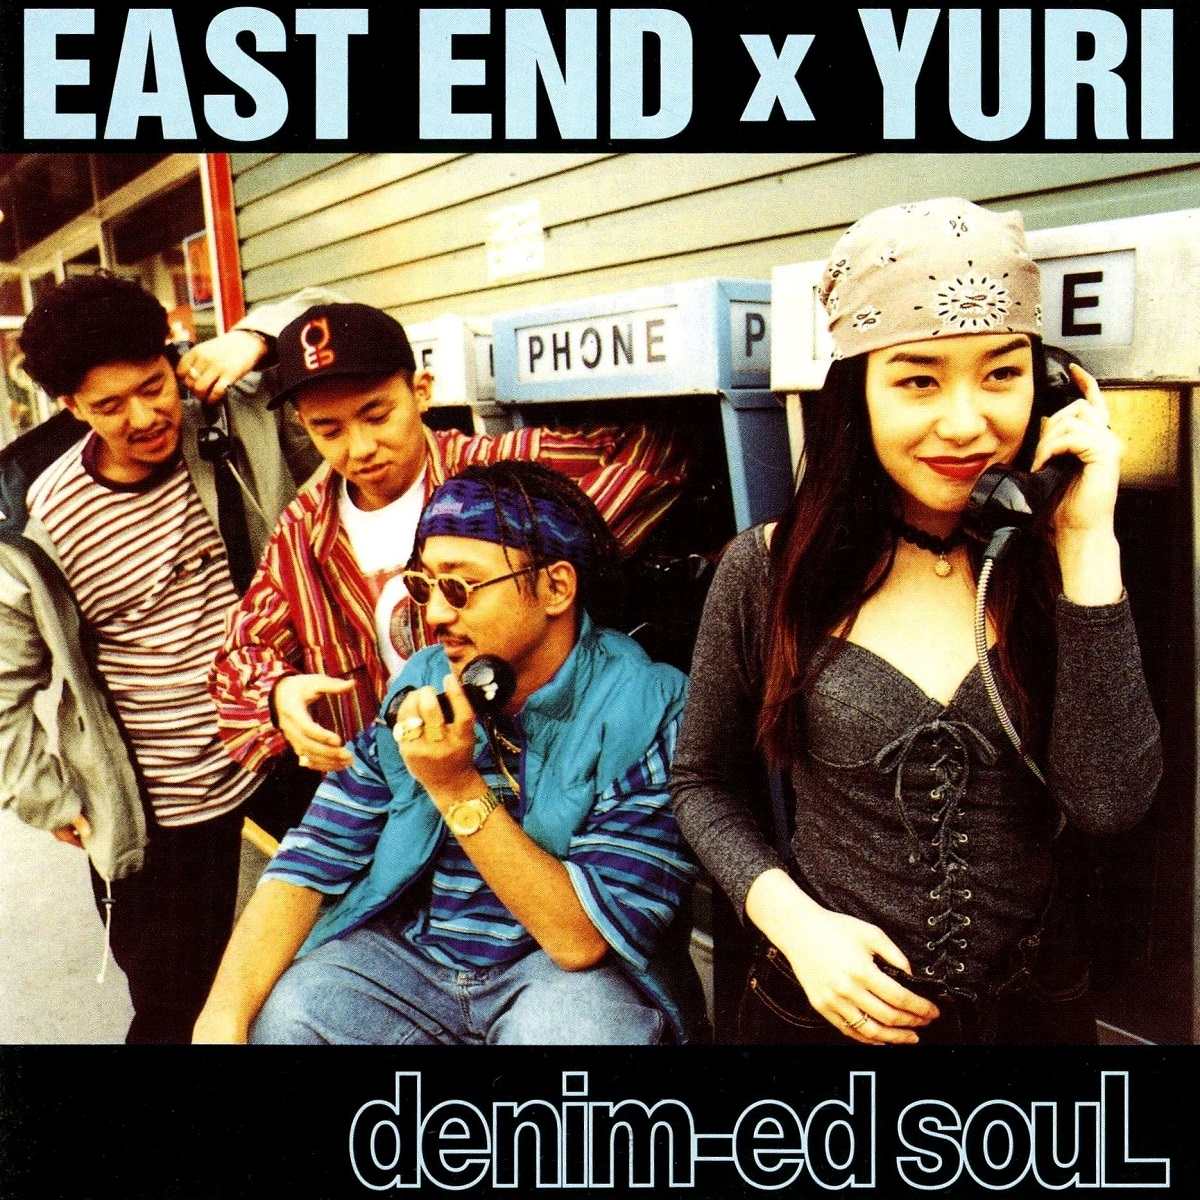 EAST END×YURI「denim-ed souL」(94年) FILE RECORDS